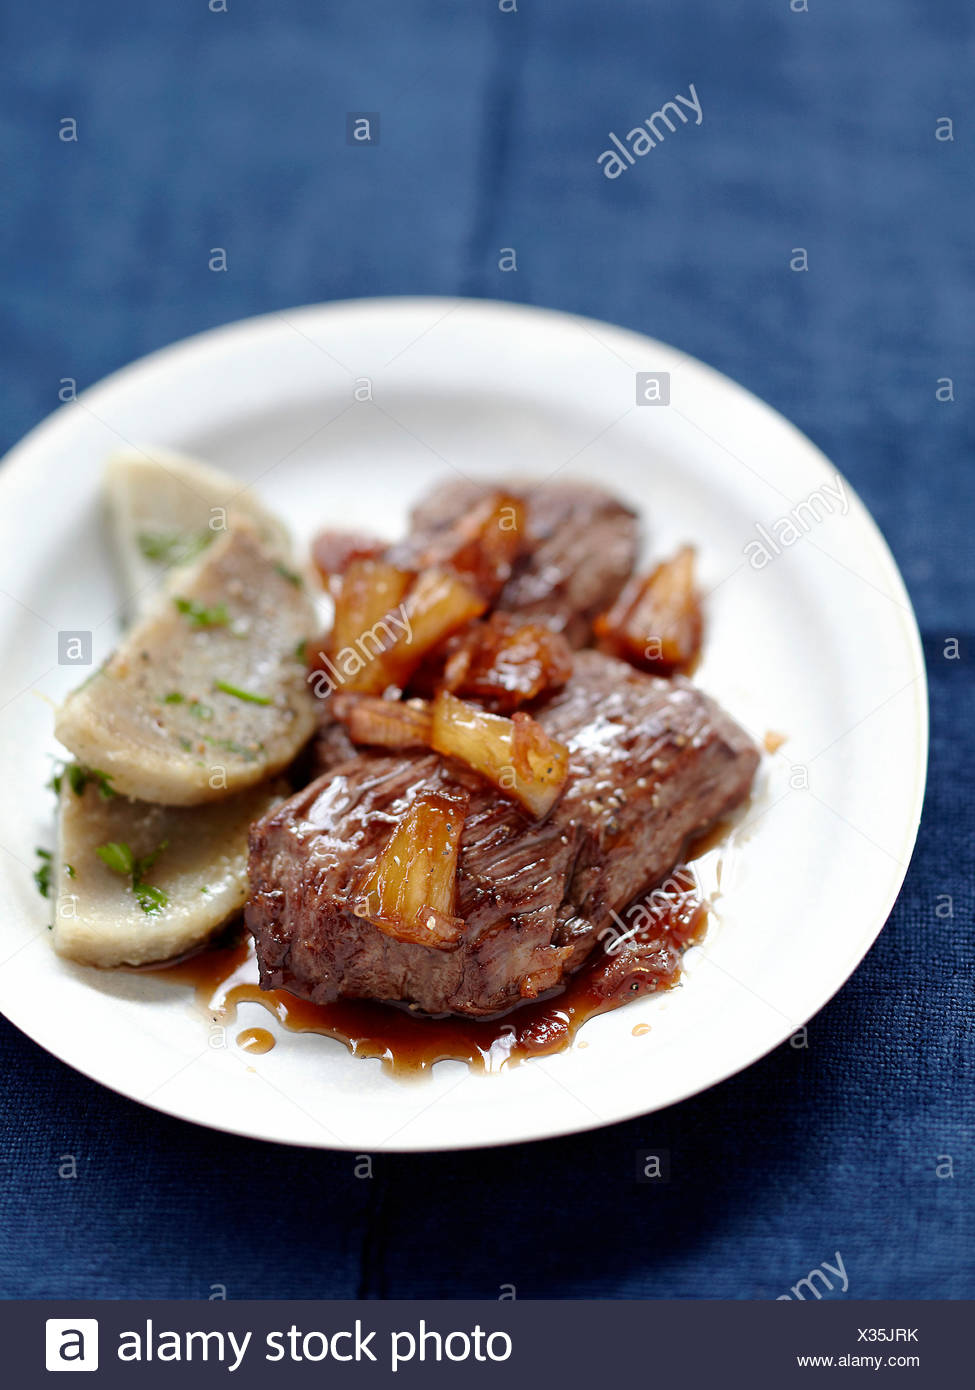 Sweet and salty grilled sirloin steak,artichoke bases with parsley - Stock Image